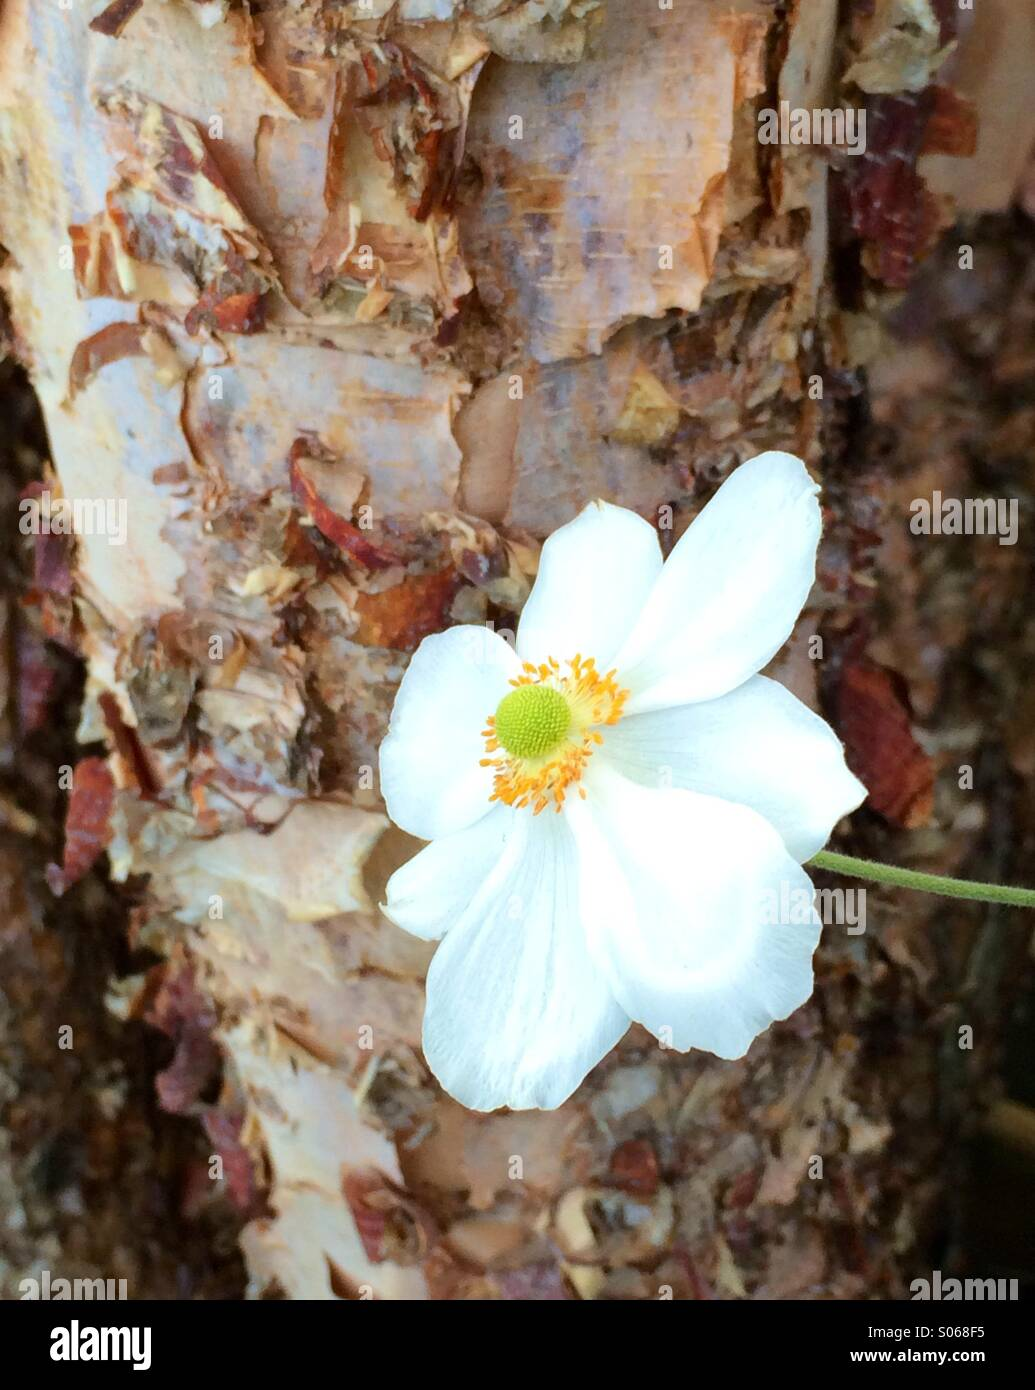 Rough and smooth bark stock photos rough and smooth bark stock silky smooth petals of this beautiful white flower meet the rough textures of the neighboring tree mightylinksfo